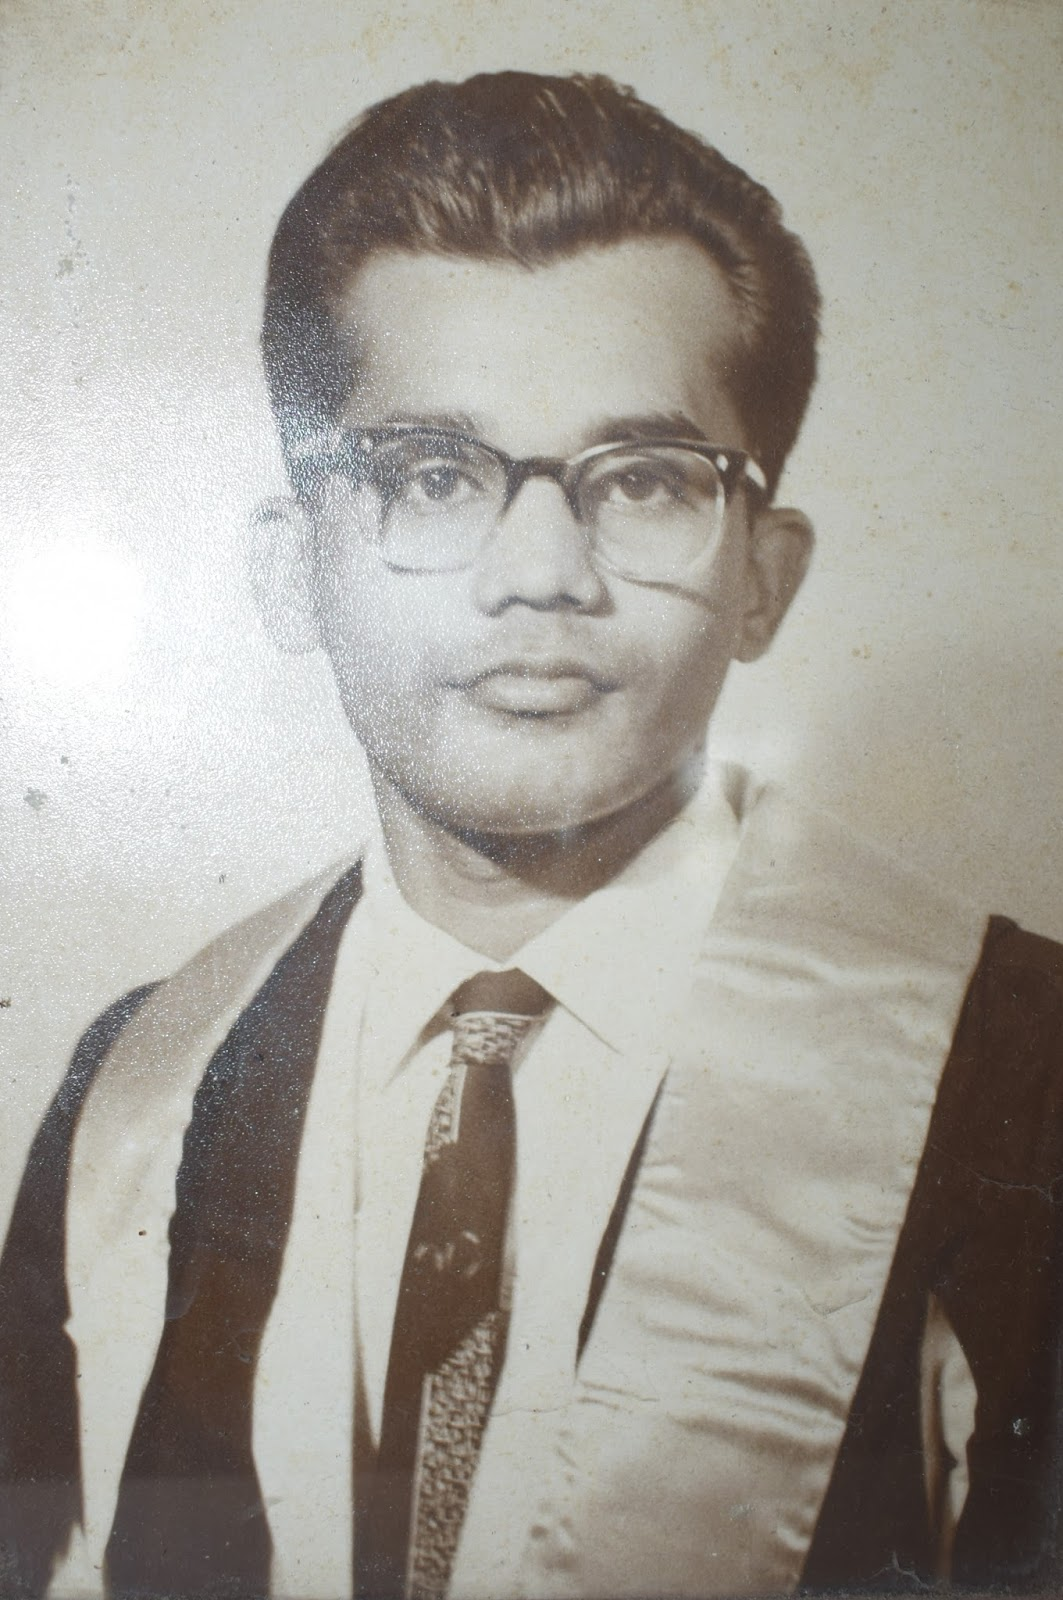 Somaweera Senanayake is a novelist I haven't read (because I don't read much). He came to us in other ways: through those teledramas, films, and episodes ...